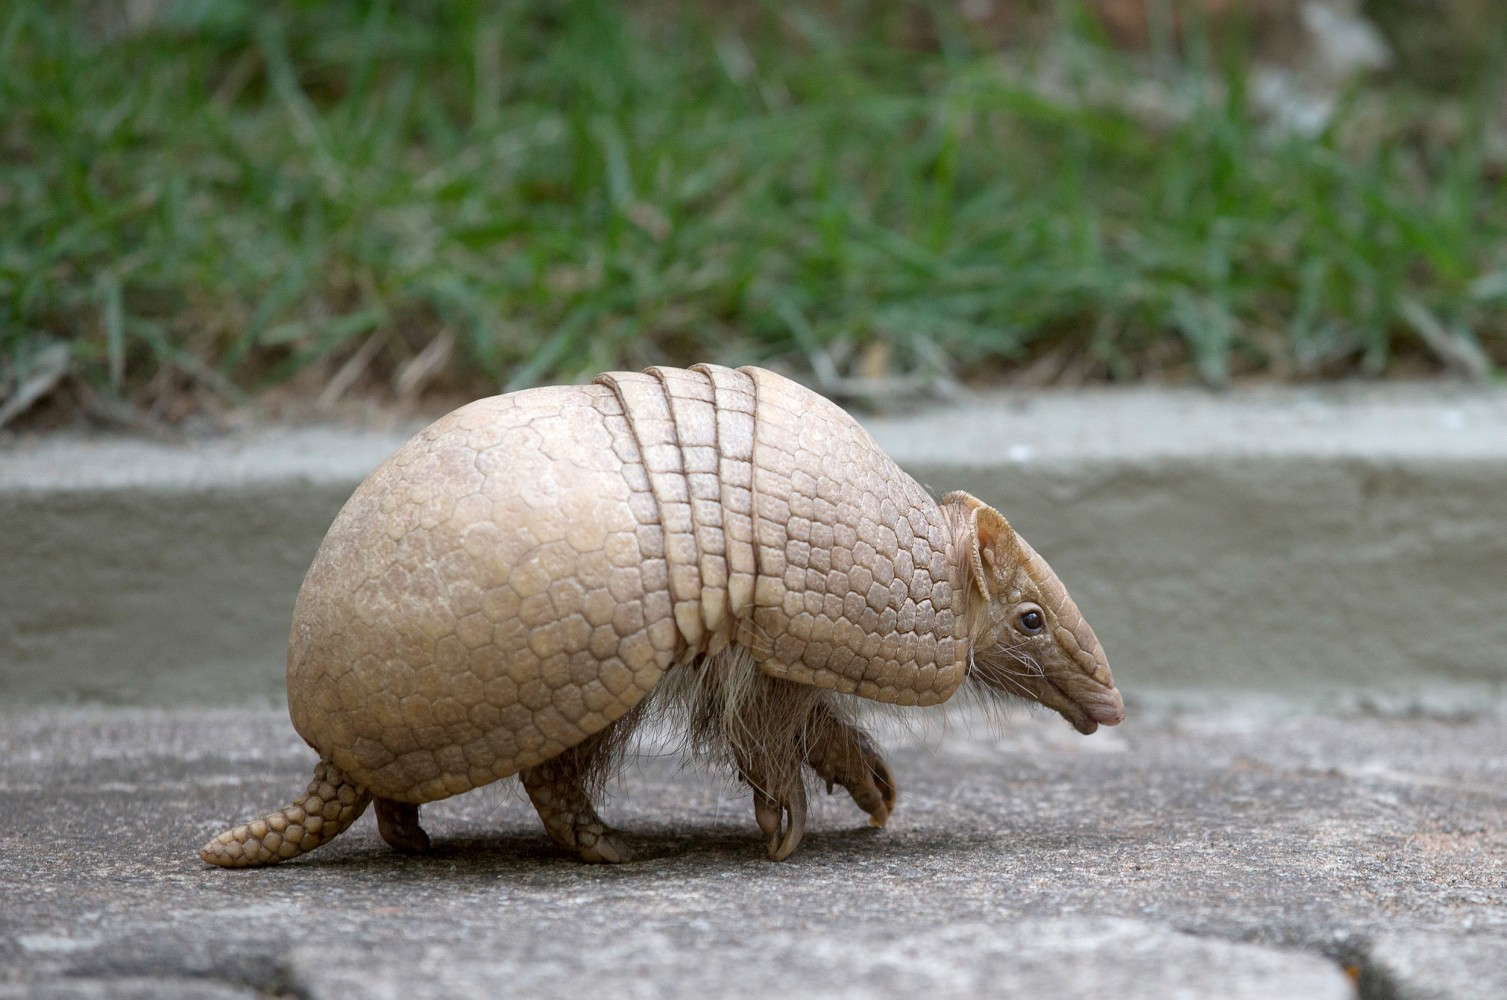 Texas Man Injured After Bullet Ricochets Off Armadillo